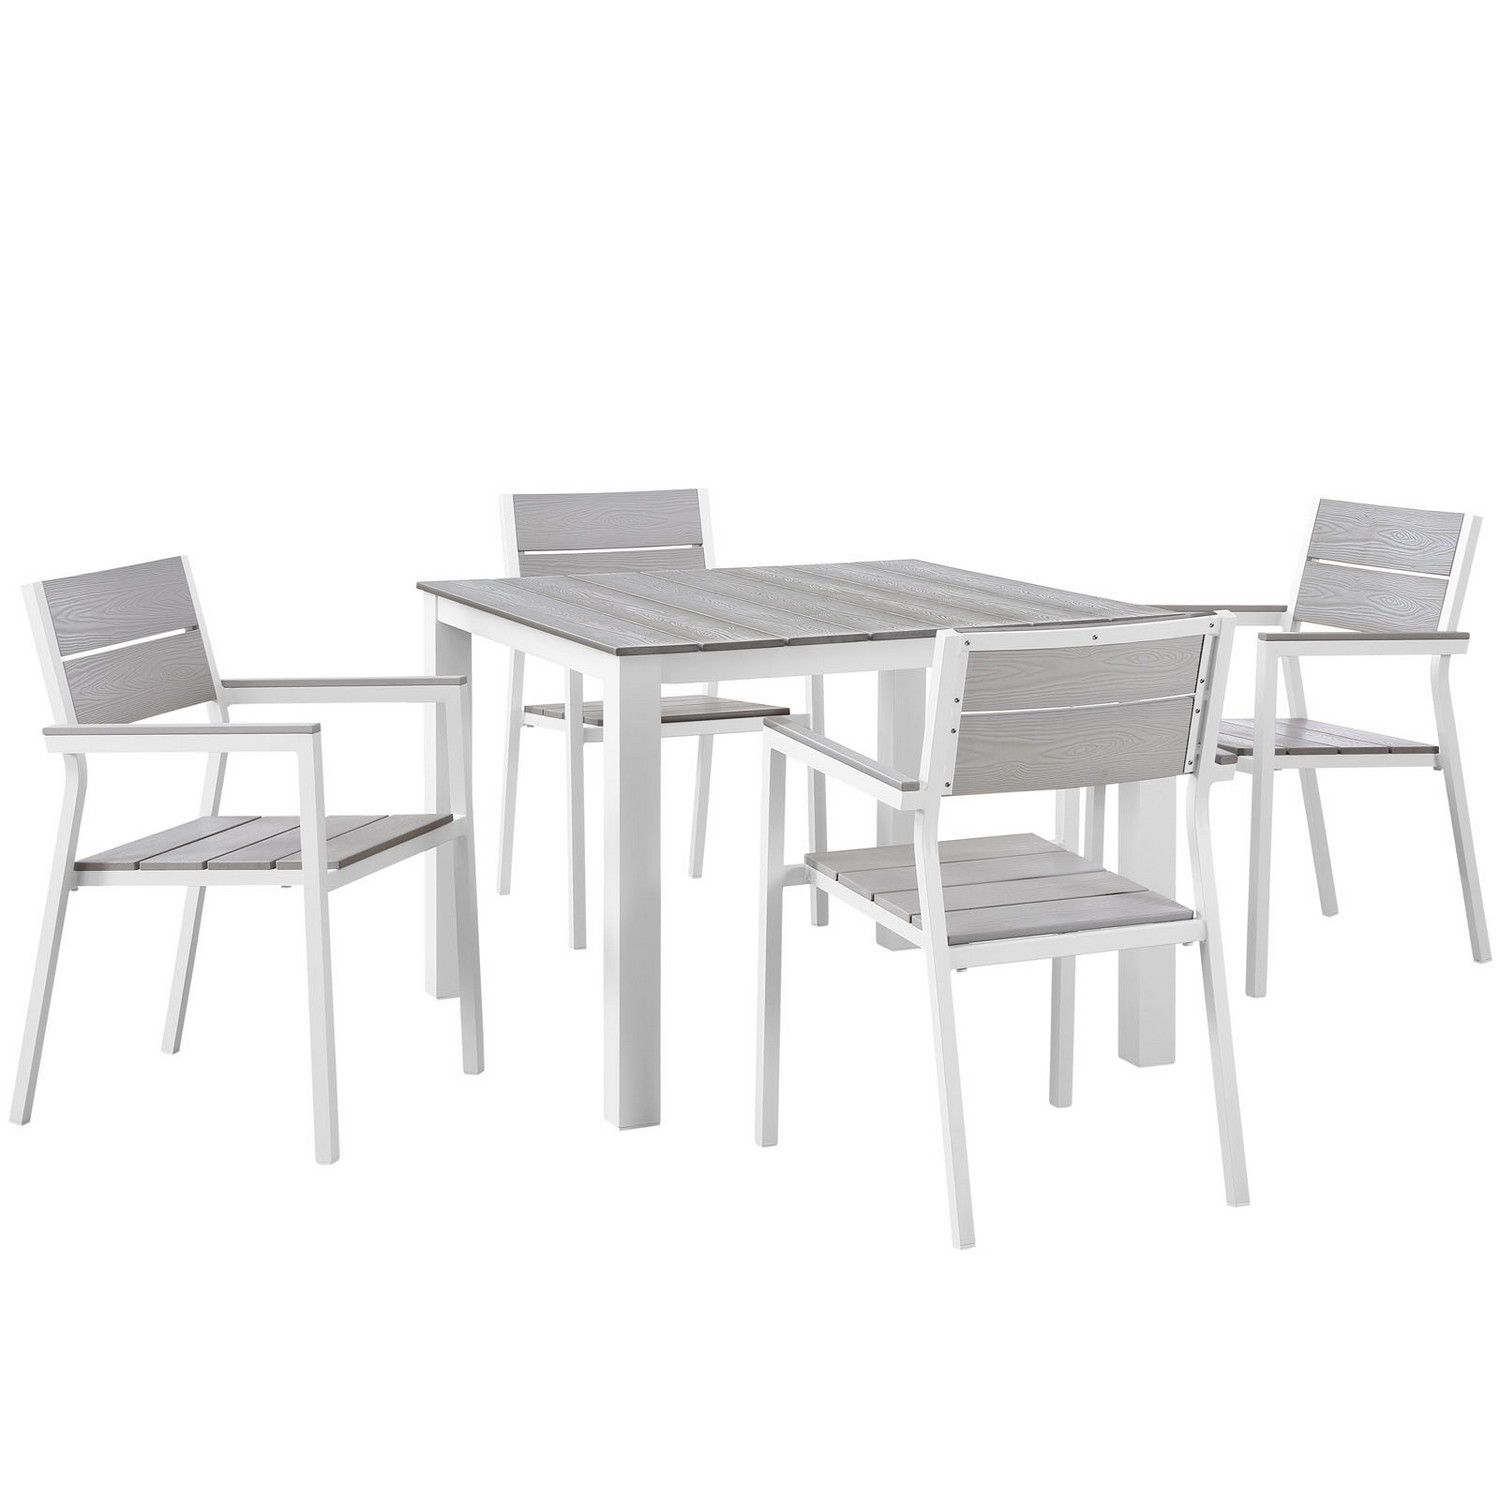 Modway Maine 5 Piece Outdoor Patio Dining Set - White/Light Gray